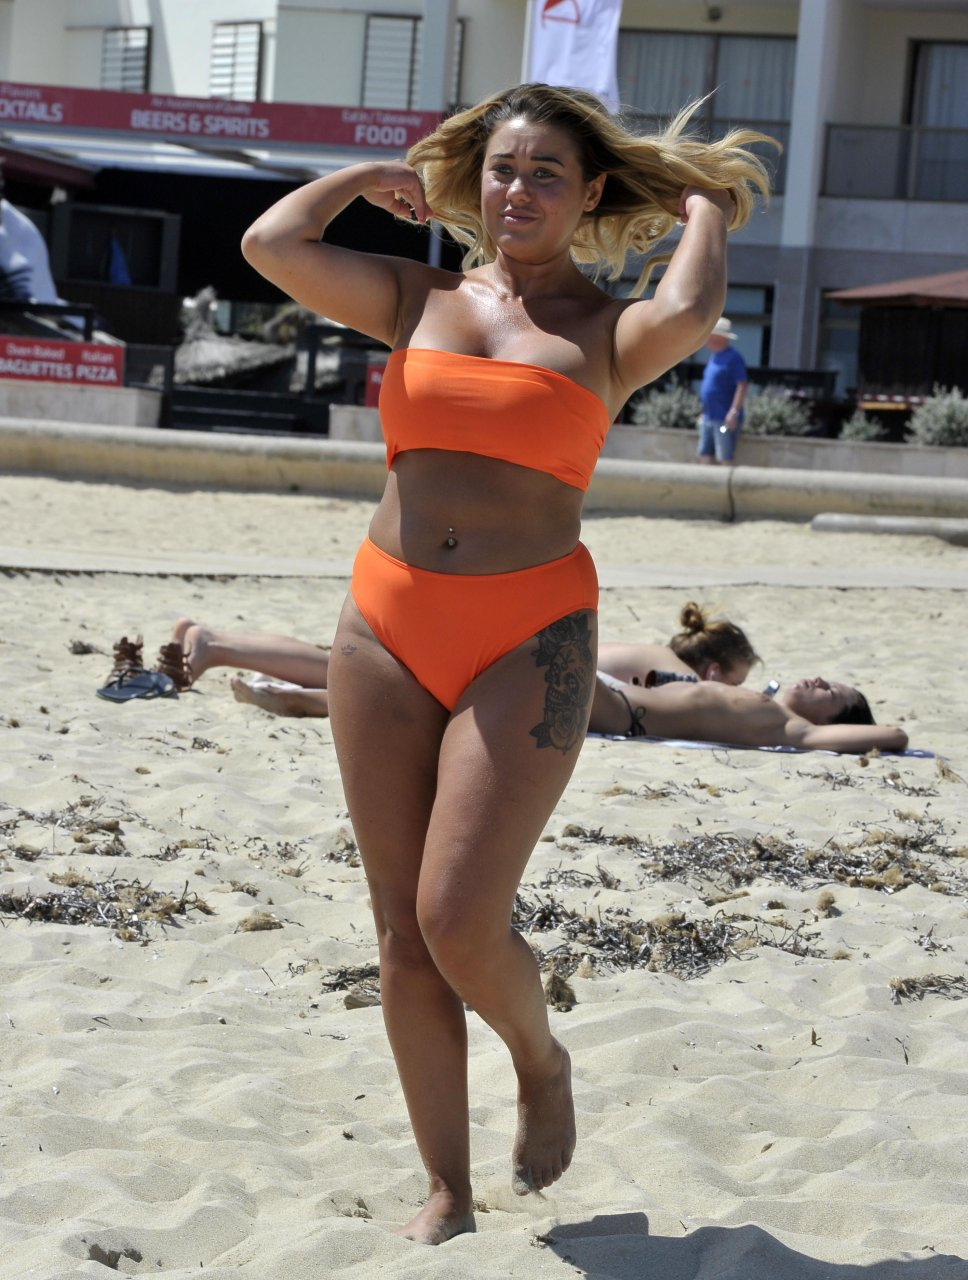 """Big Brother"" Ellie Young puts on busty display as she shows off cleavage in a bright orange bikini in Spain (October 2018)."